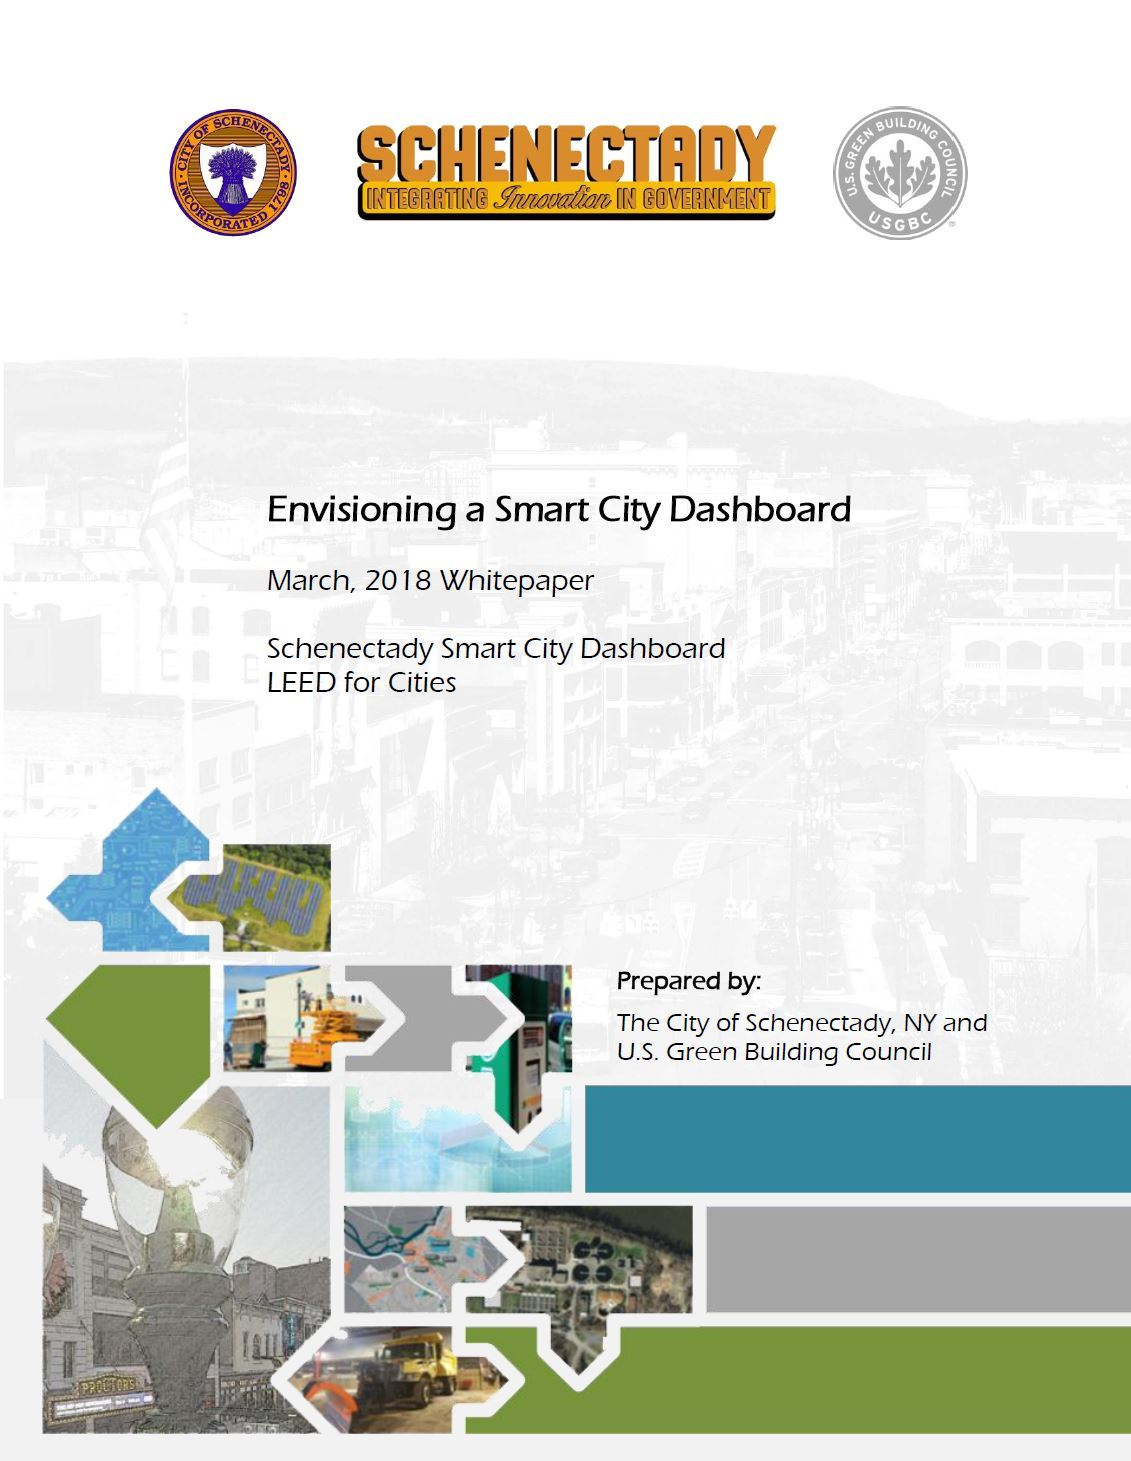 Envisioning a Smart City Dashboard